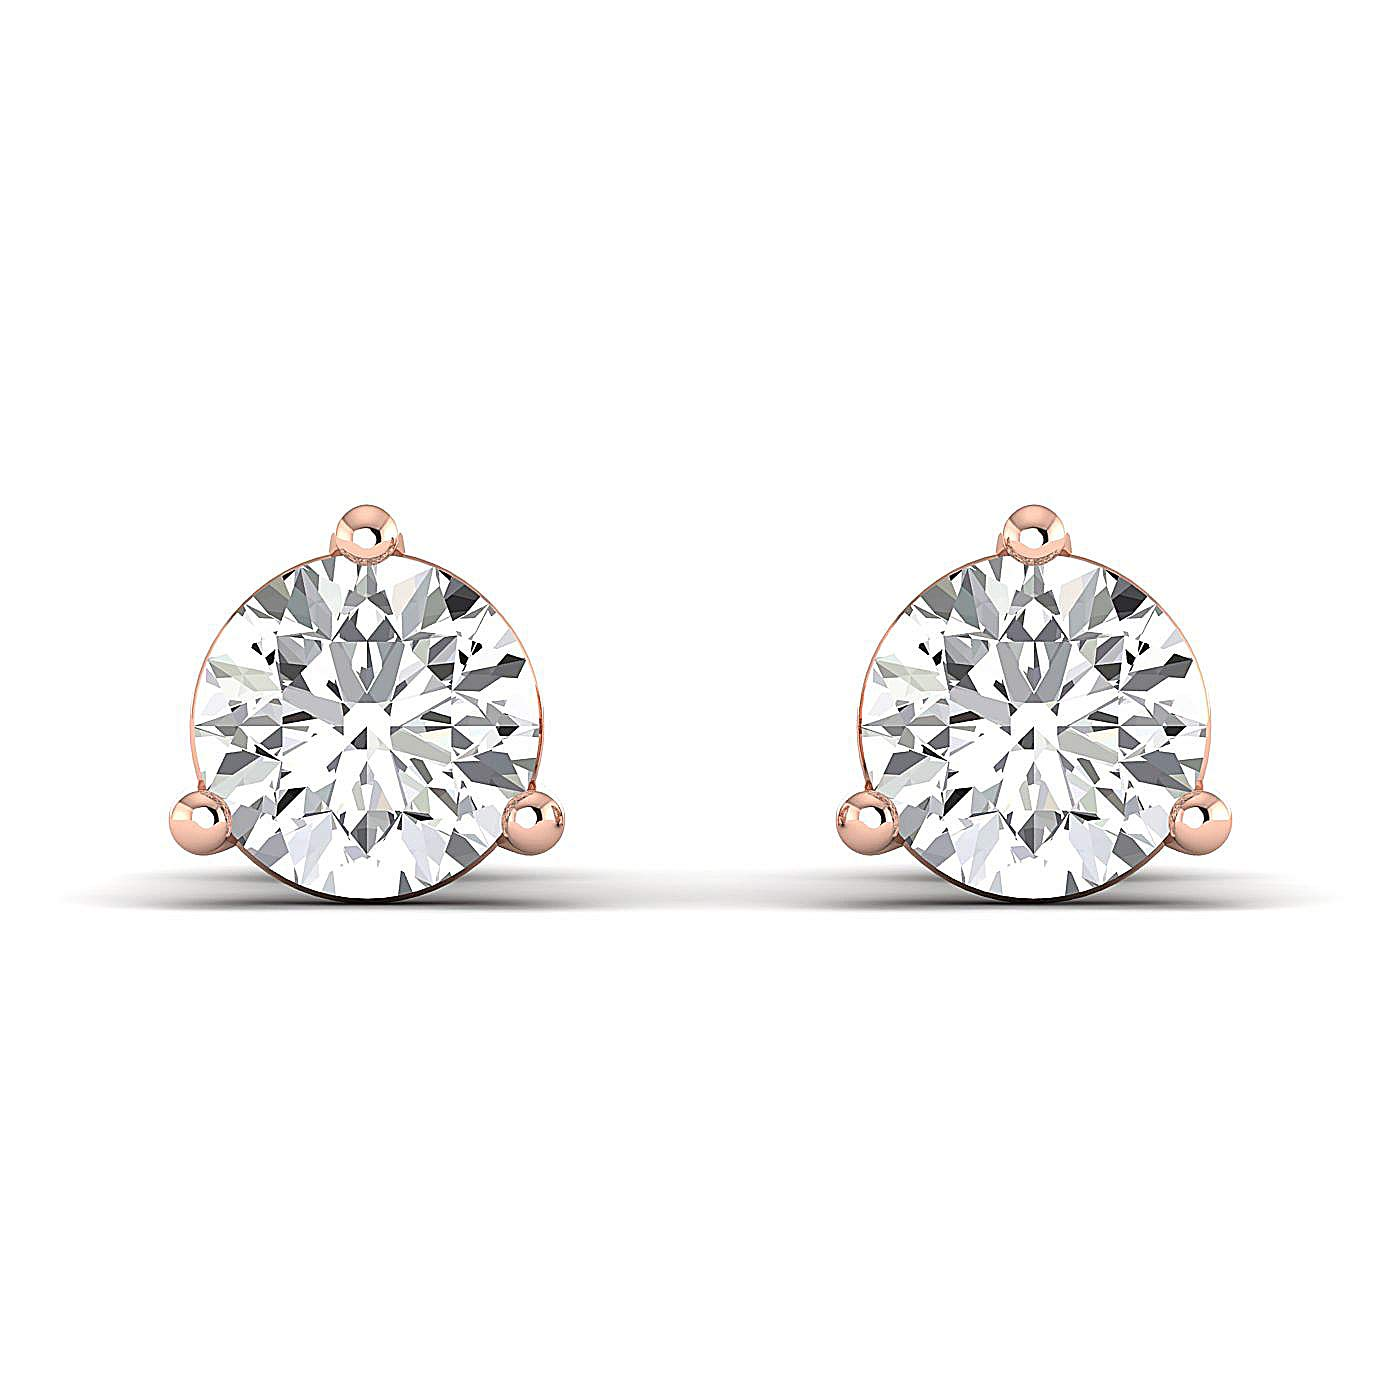 GH//VVS Earring Studs0.3 to 4 Carat Moissanite Stud Earrings /Pure Gold /& 925 Sterling Silver Stud Earrings for Women perfect Jewelry Gifts for Women Teen Girls Round Brilliant